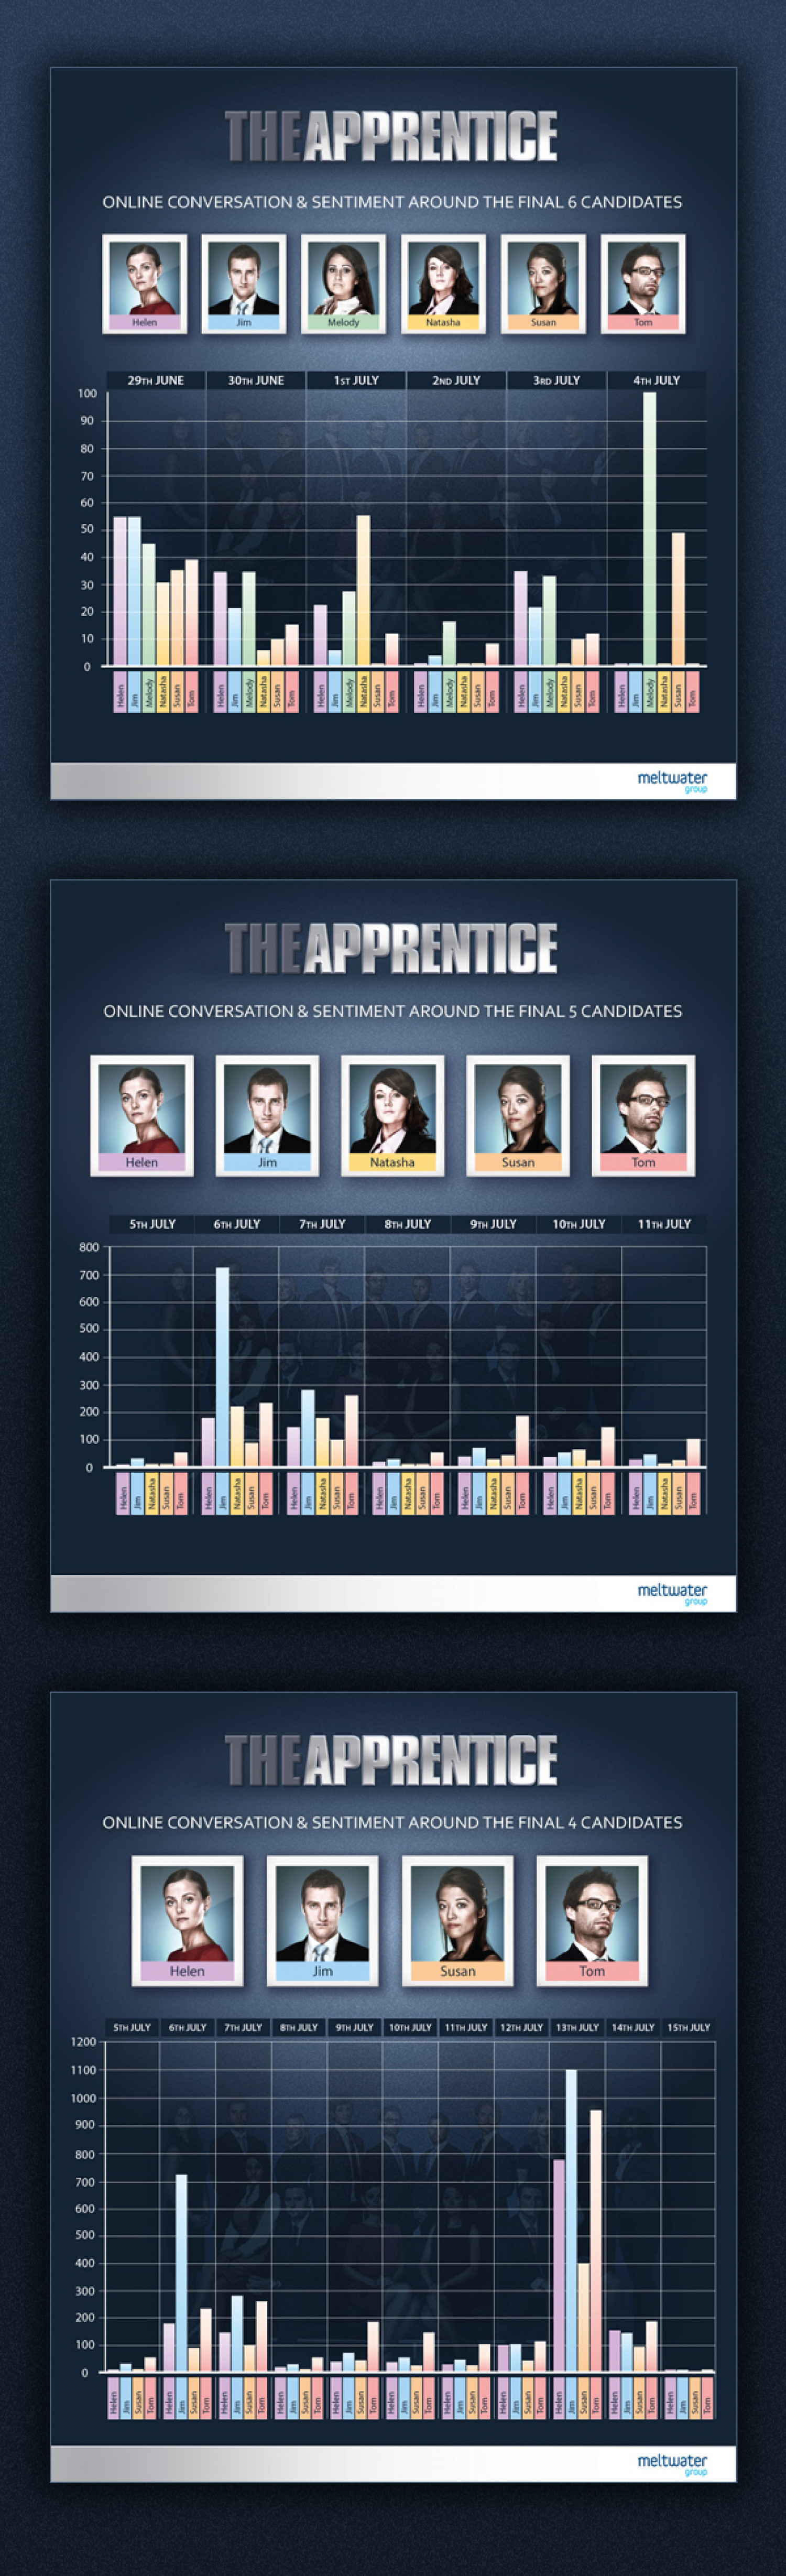 The Apprentice Infographic